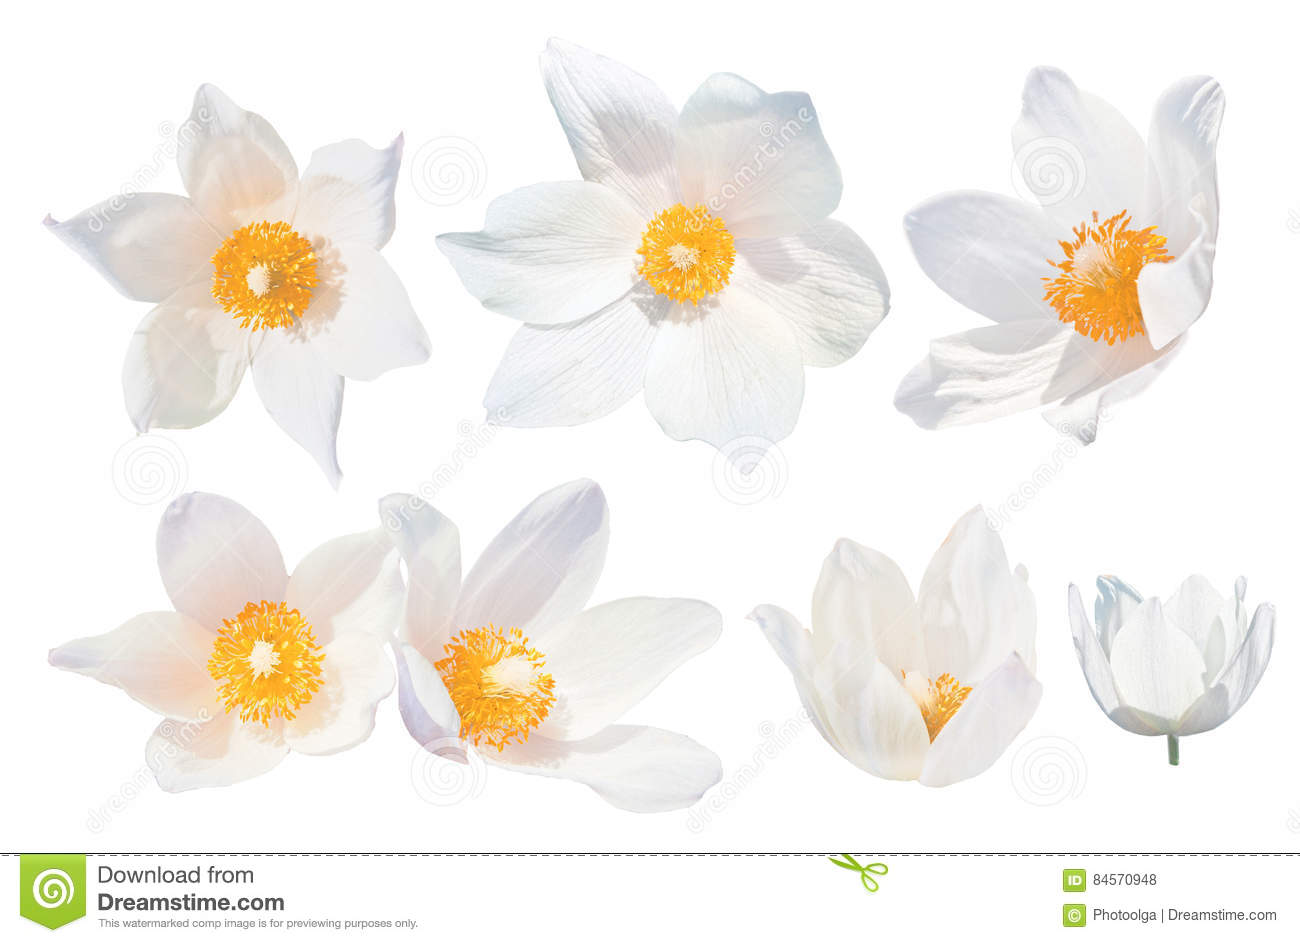 White snowdrops pulsatilla patens isolated on white background set white snowdrops pulsatilla patens isolated on white background set of white snowdrops the spring mightylinksfo